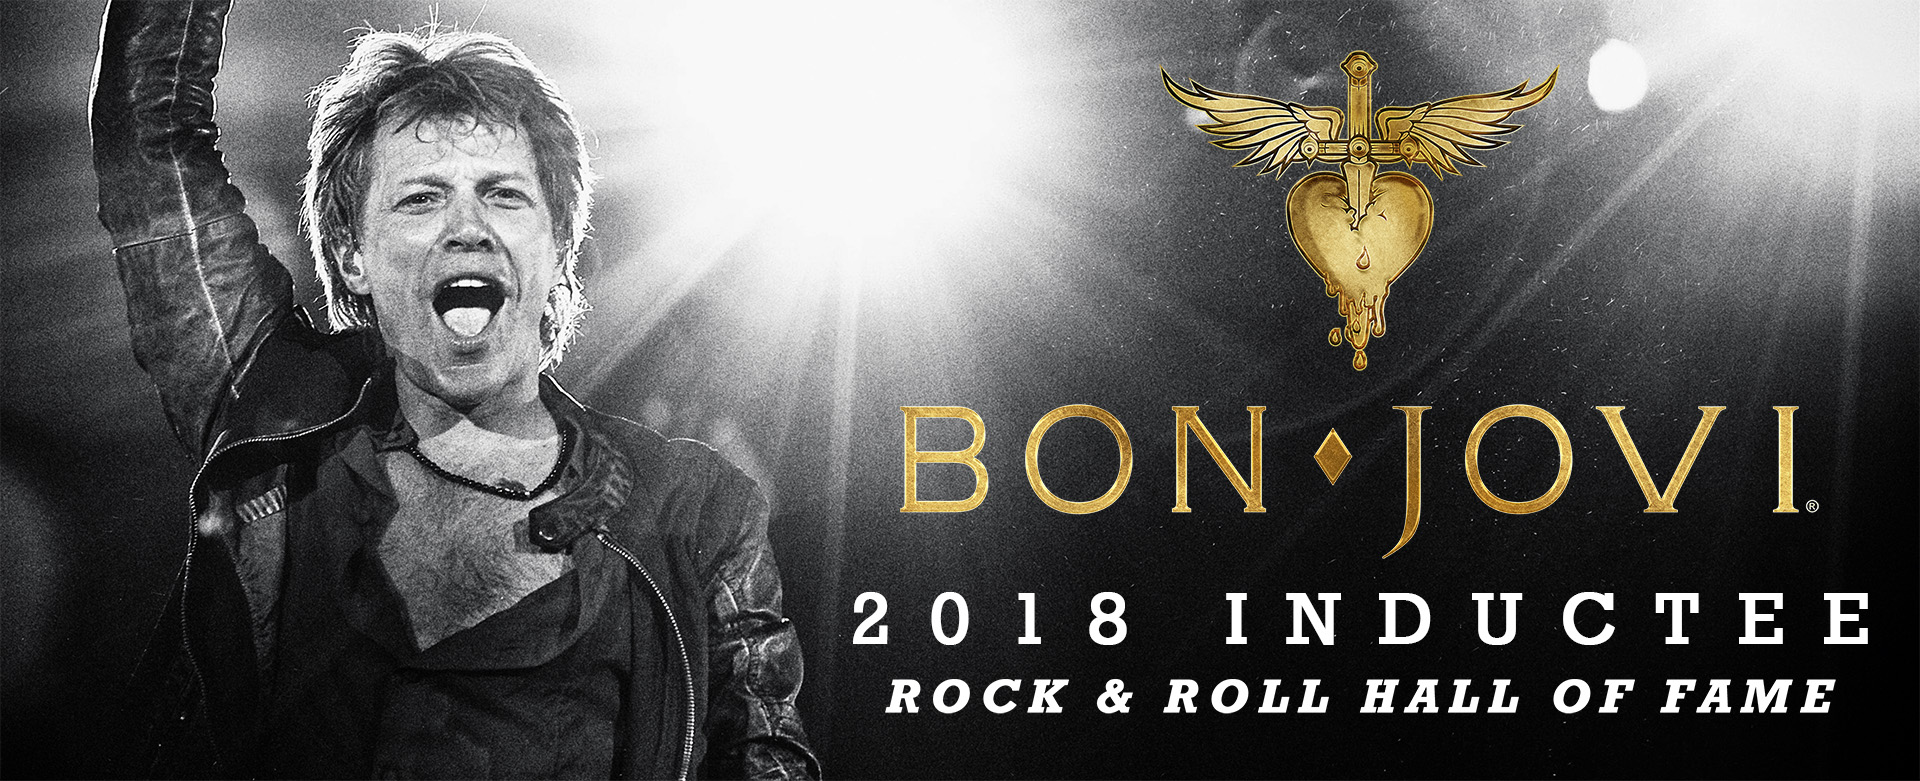 Immagine I Bon Jovi entrano nella Rock and Roll Hall of Fame!